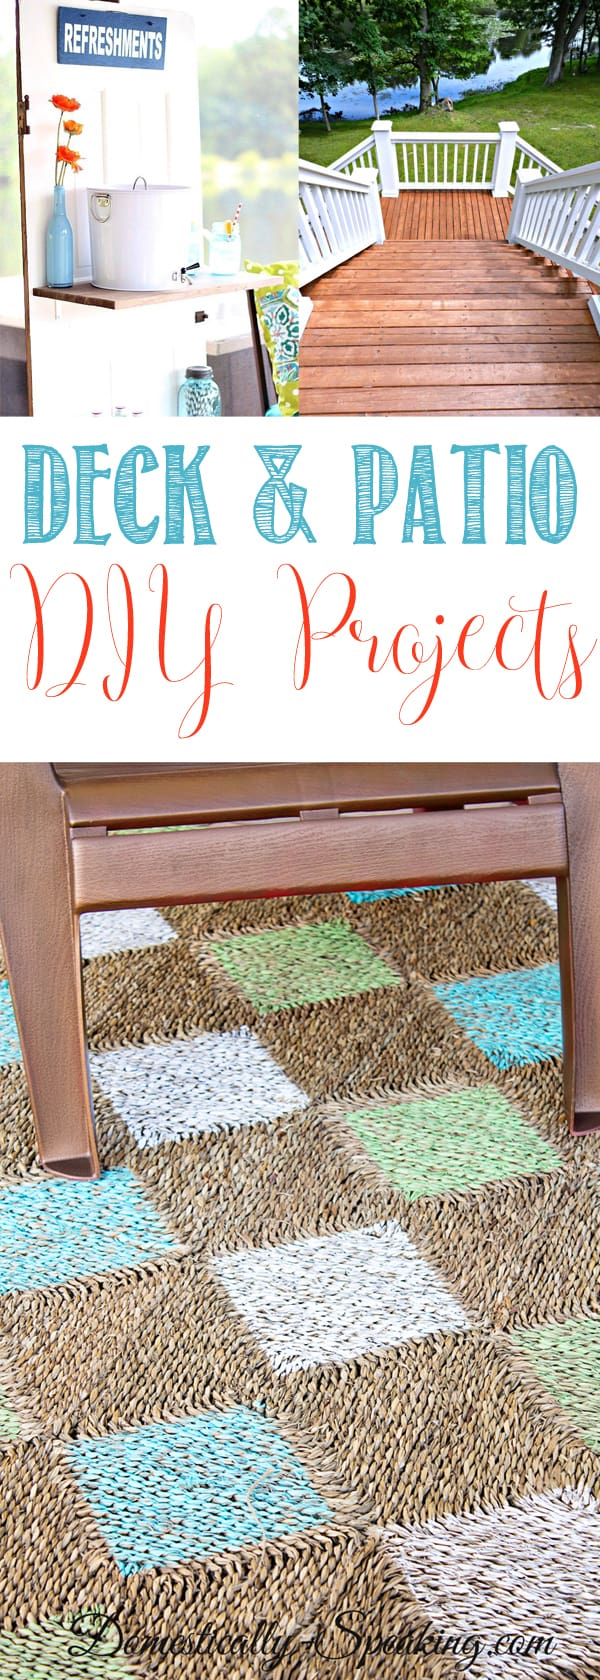 Deck and Patio DIY Projects you'll want to try - Amazing tutorials, Inspiring Ideas of project to help your outdoor spaces more